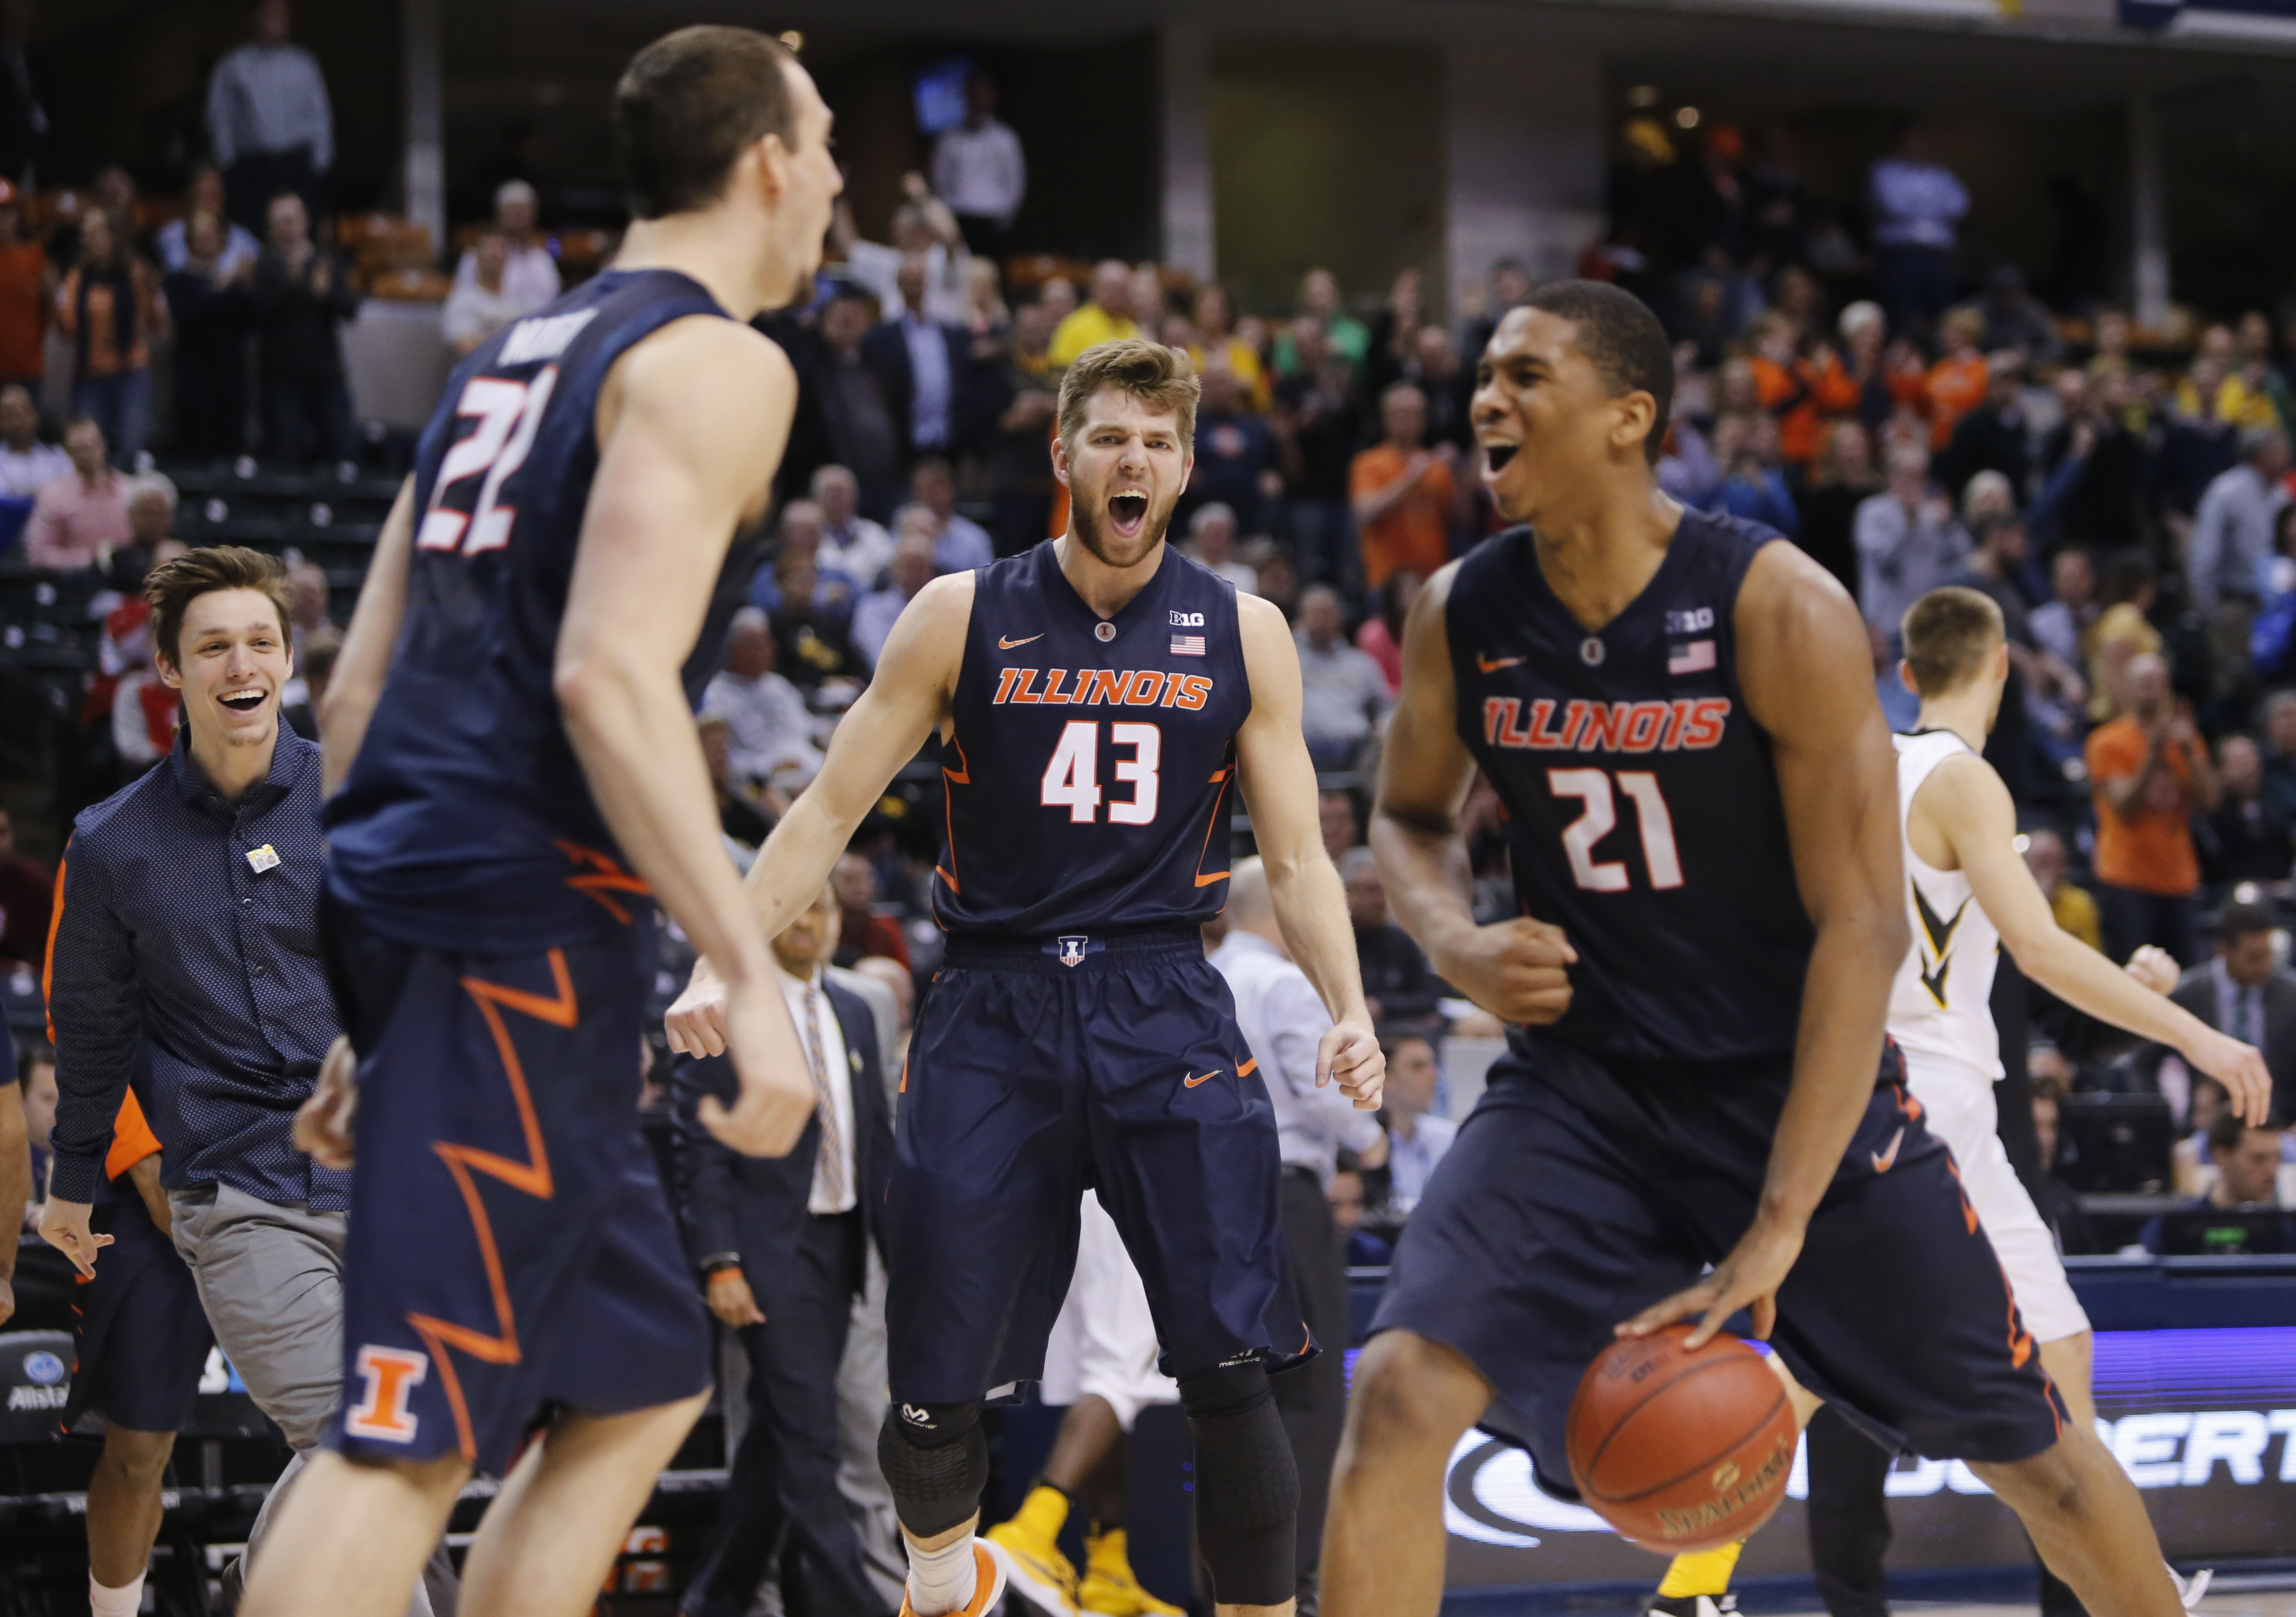 Illinois' Maverick Morgan (22), Michael Finke (43) and Malcolm Hill (21) celebrate after an NCAA college basketball game against Iowa at the Big Ten Conference tournament, Thursday, March 10, 2016, in Indianapolis. Illinois won 68-66. (AP Photo/Kiichiro S